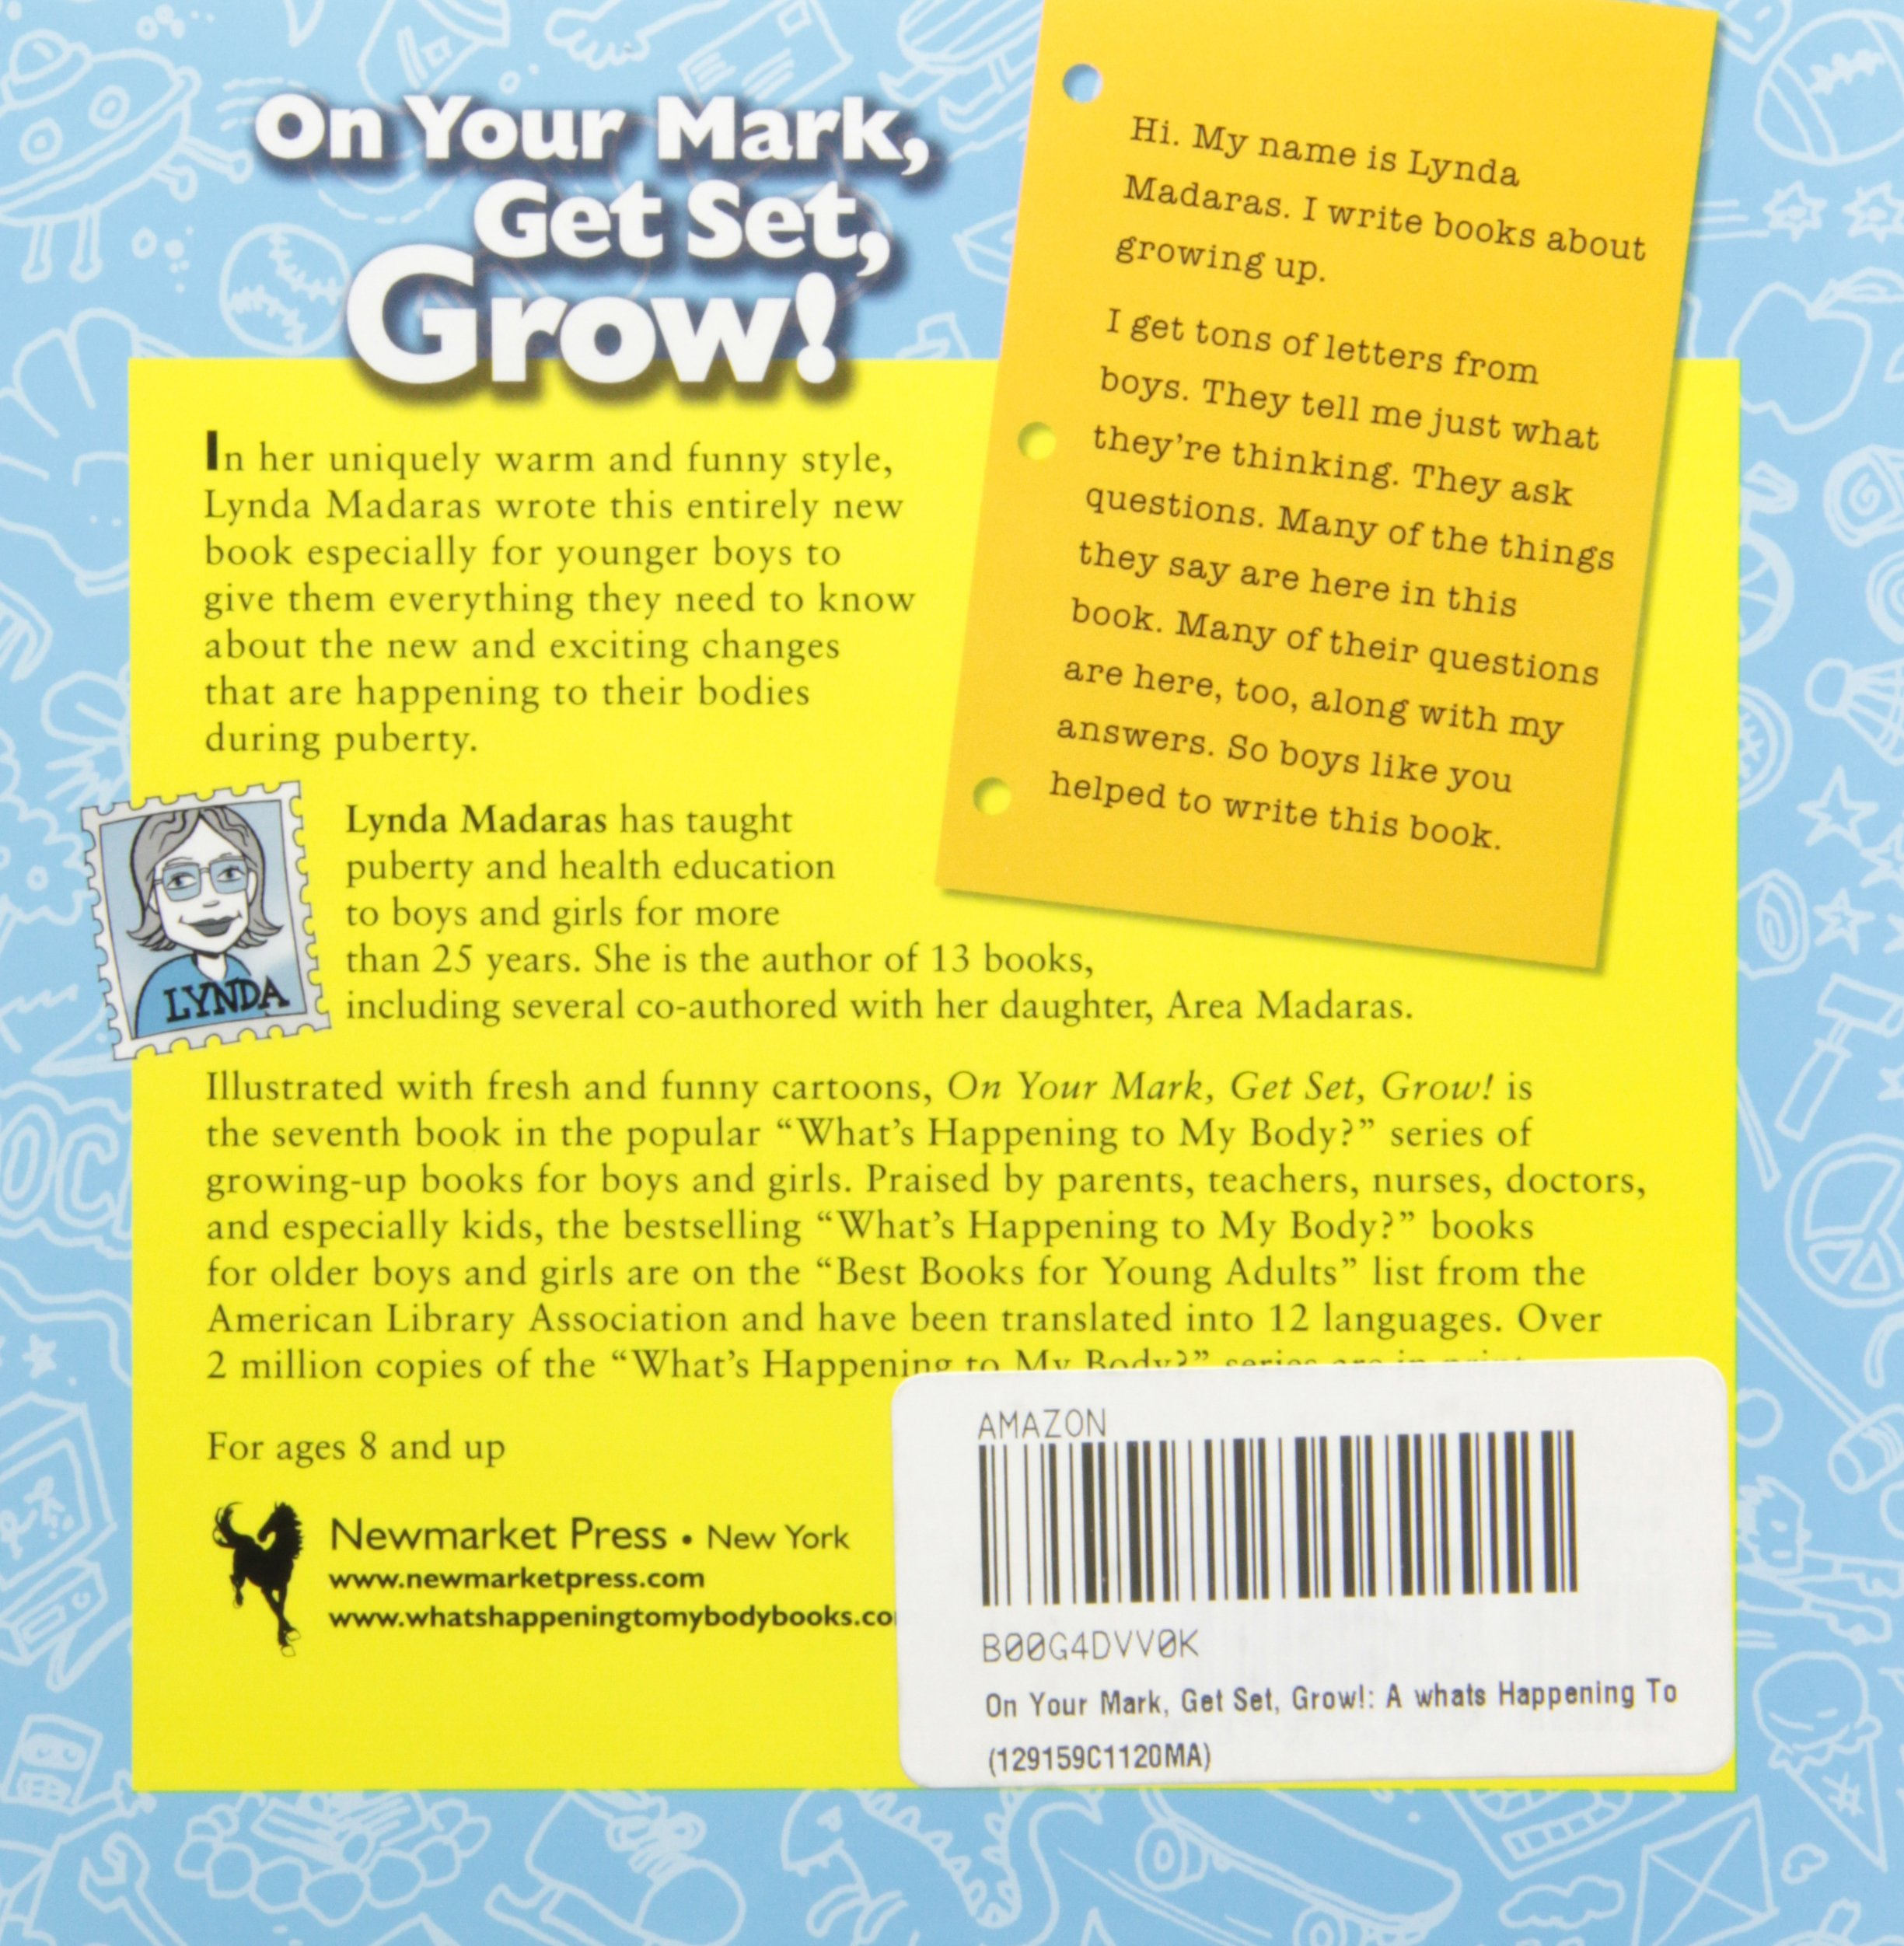 On Your Mark, Get Set, Grow!: A 'What's Happening to My Body?' Book